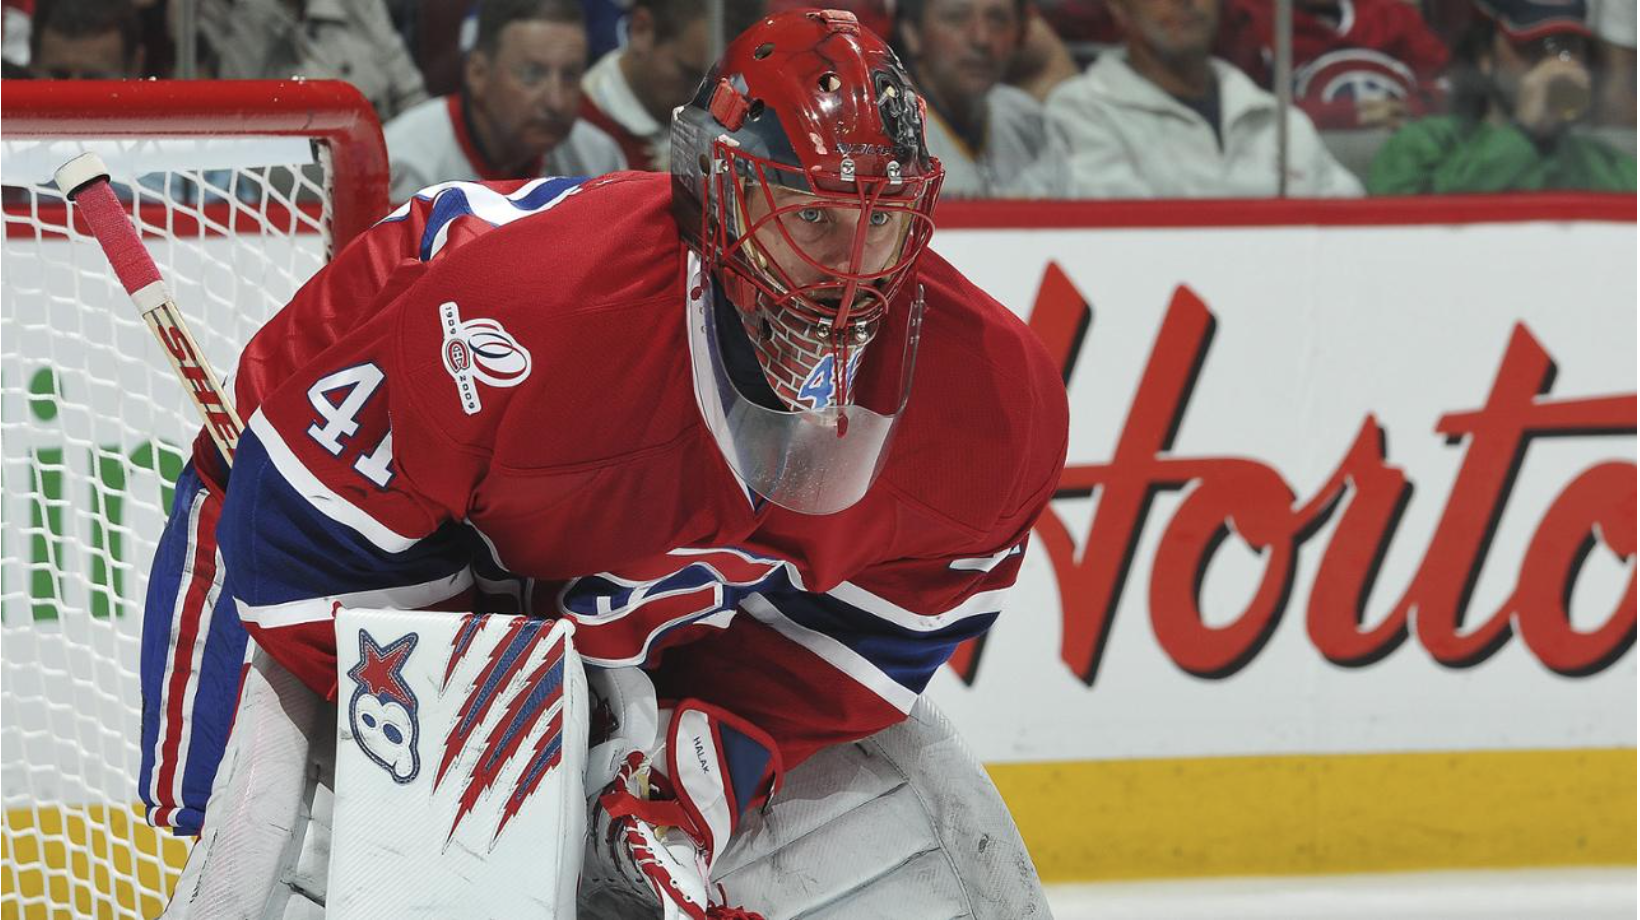 Goaltender Jaroslav Halak helped Montreal upset Washington after an incredible performance during the 2010 NHL Playoffs